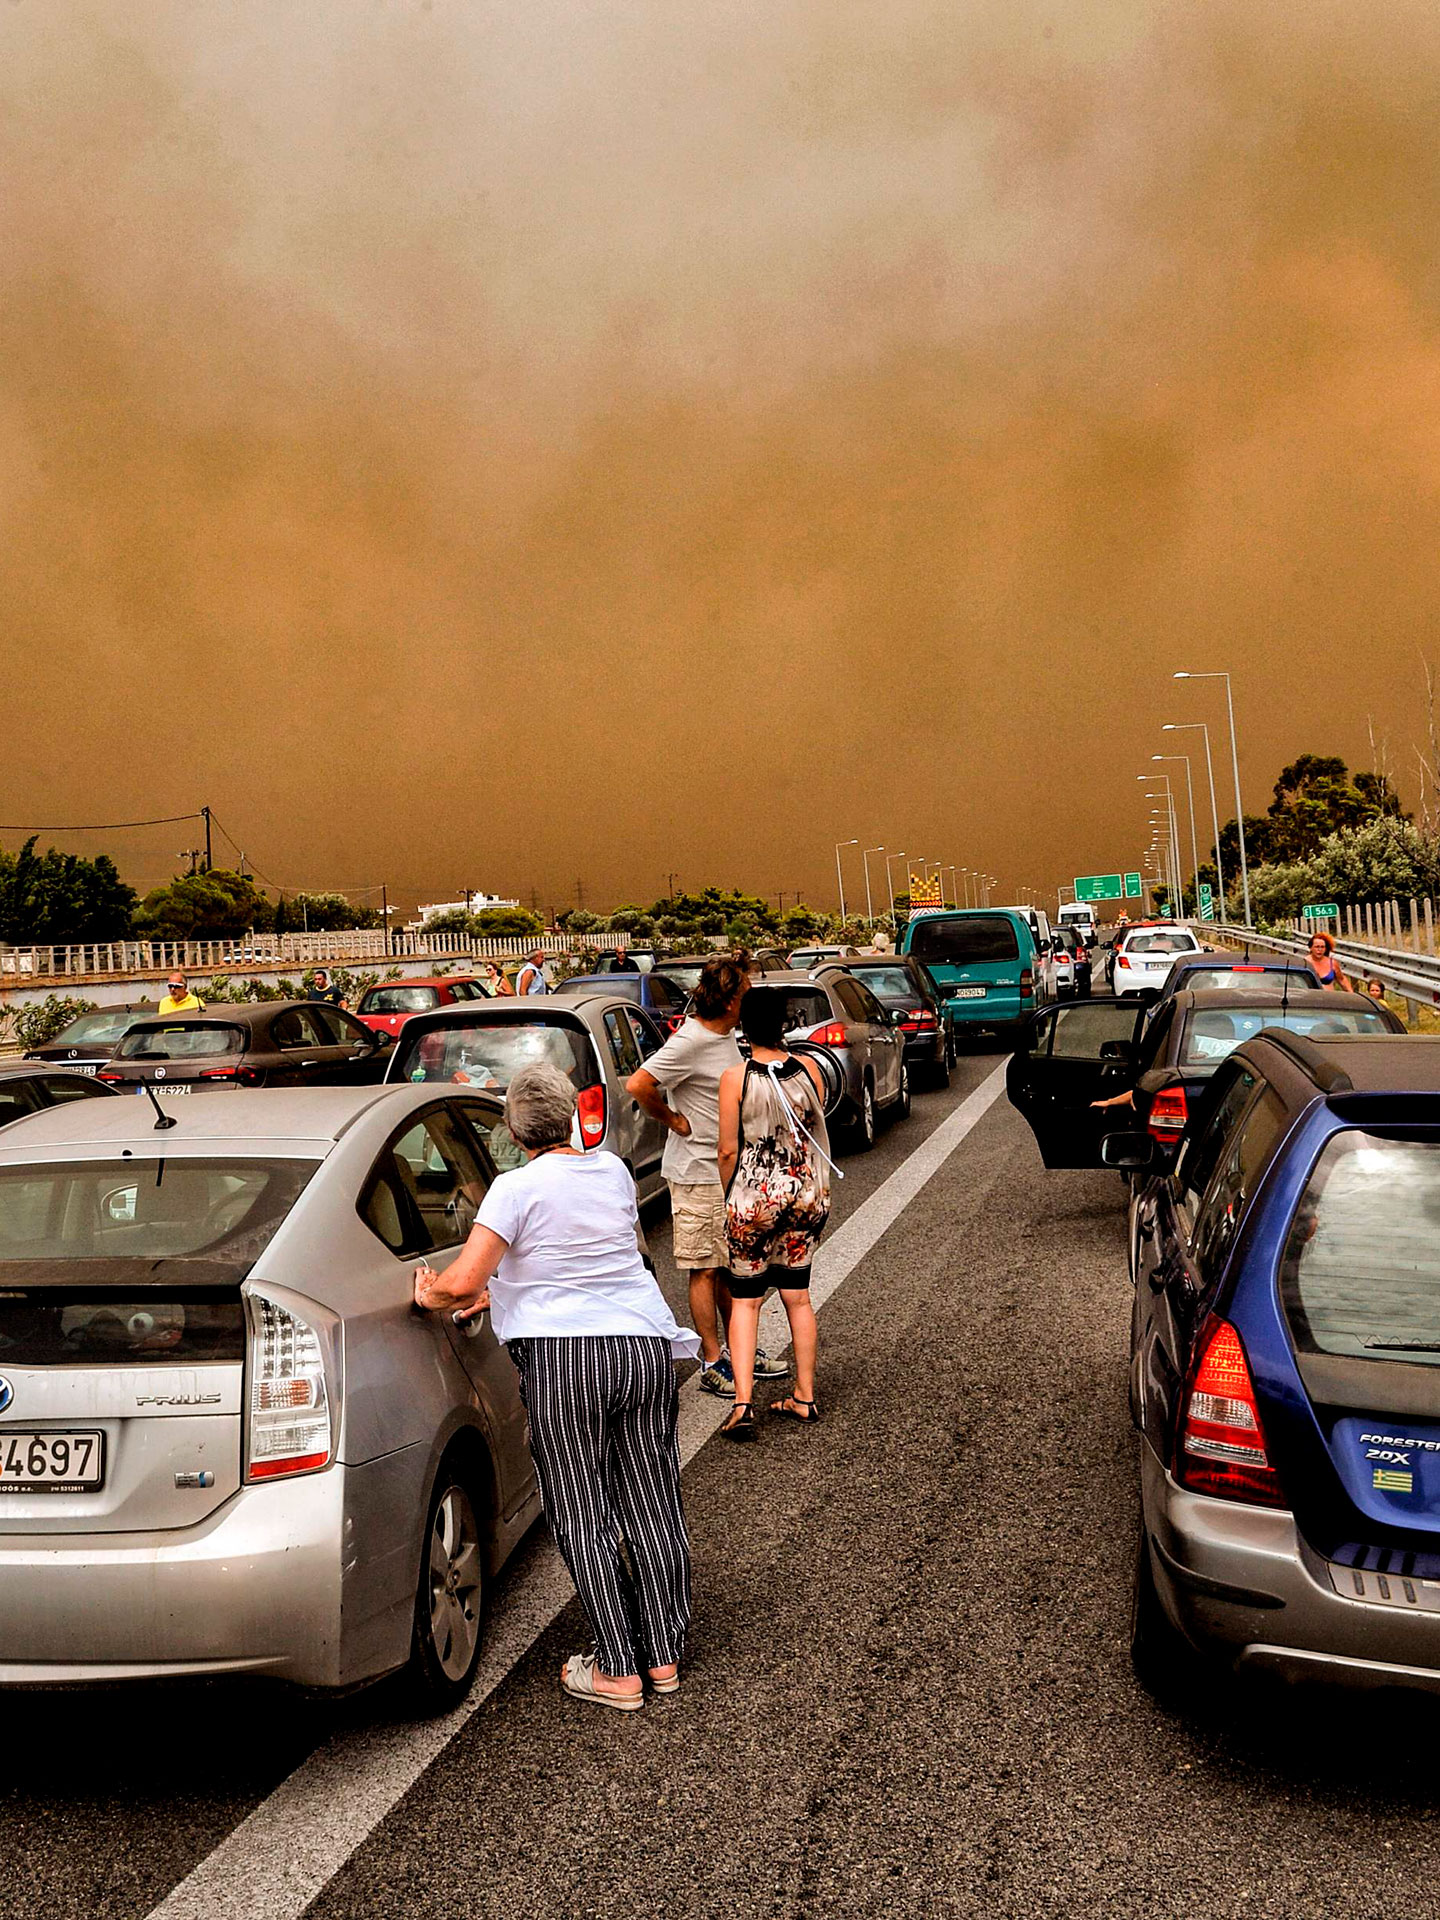 Unthinkable Tragedy What The Raging Greece Fires Look Like The